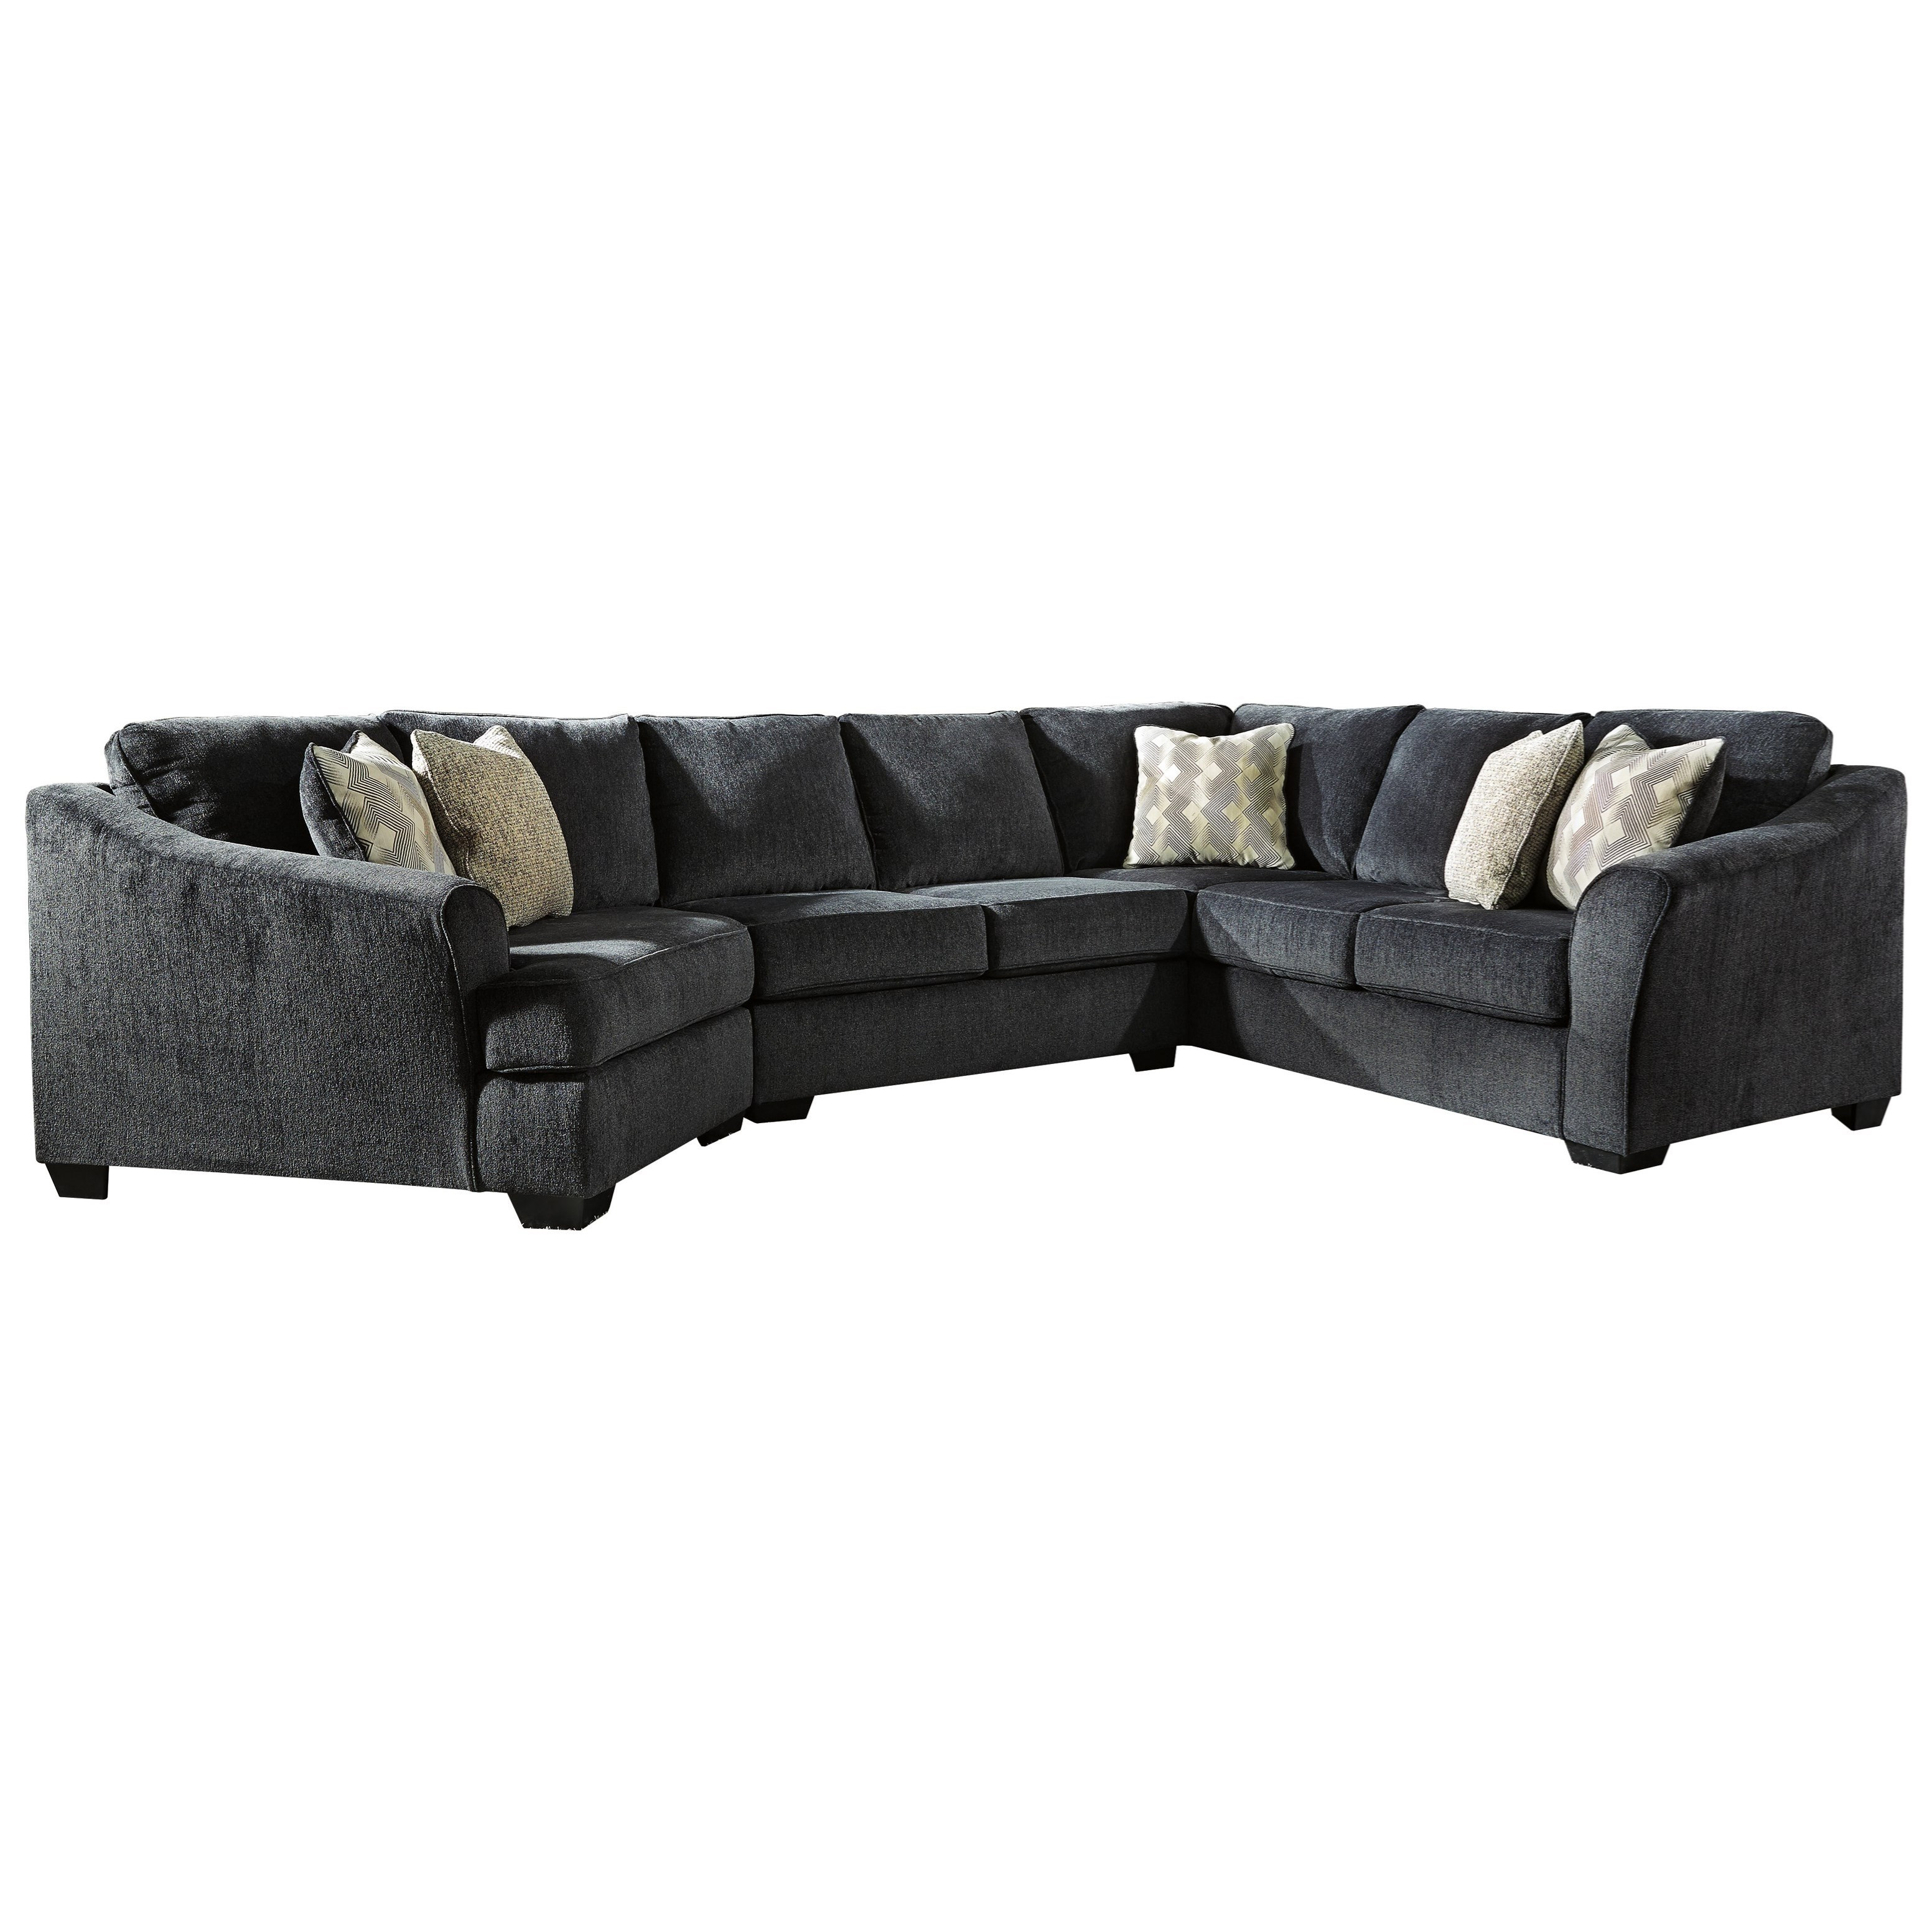 Eltmann Eltmann Sectional Sofa with Cuddler by Ashley at Morris Home